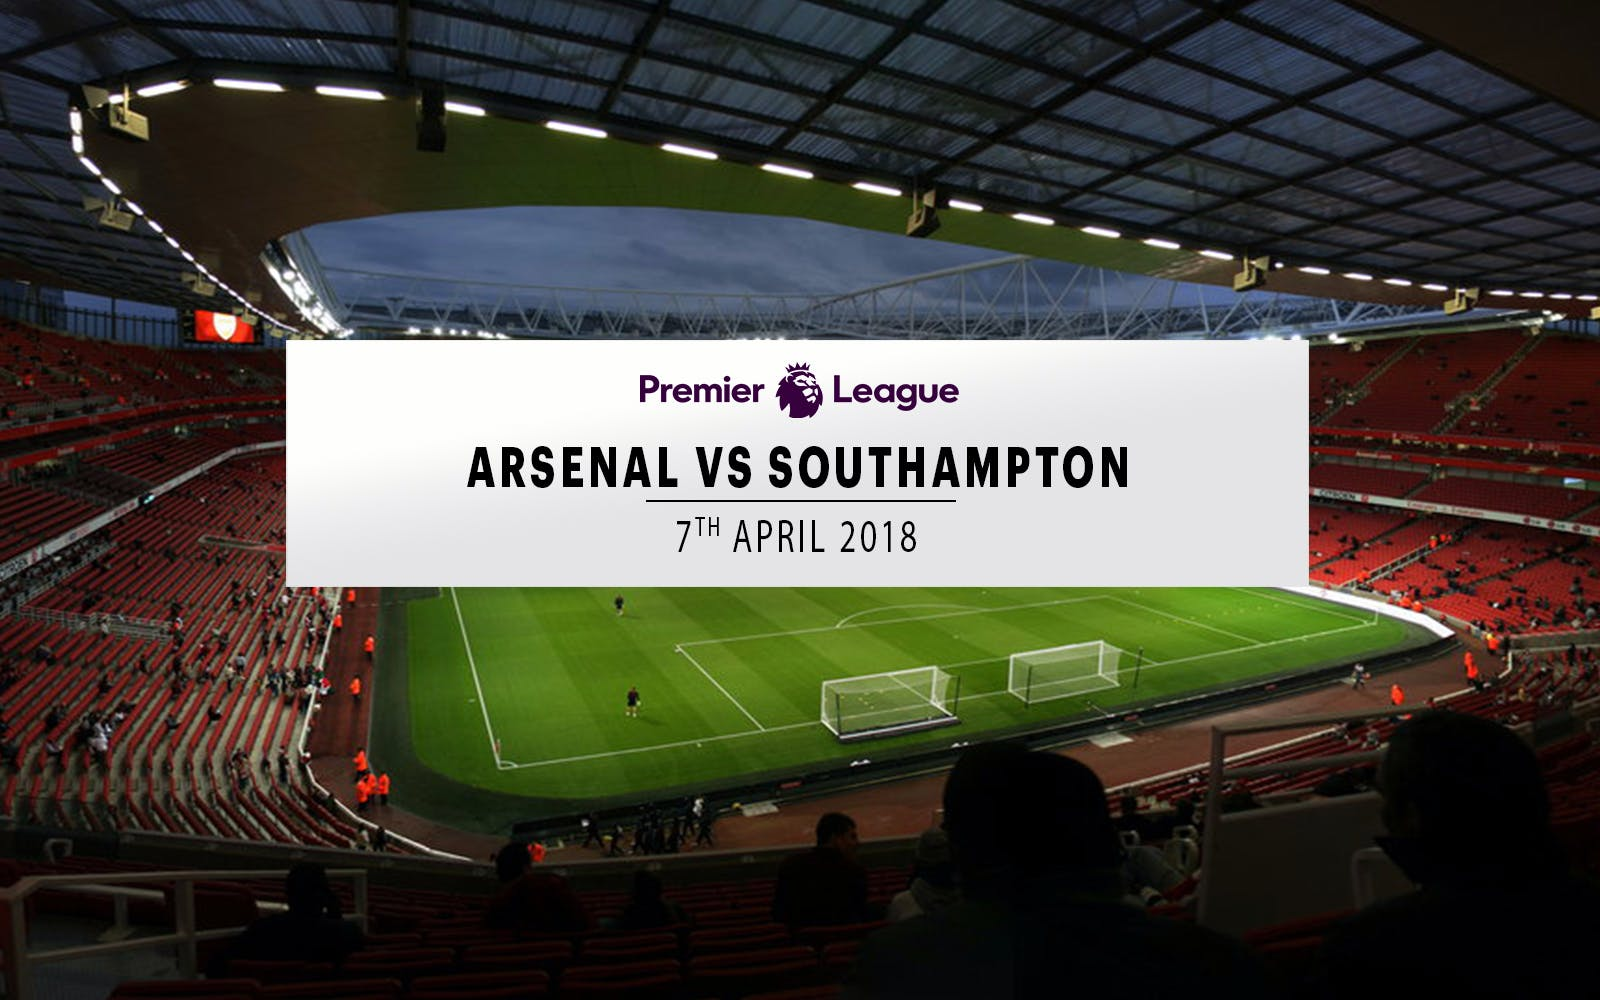 arsenal vs southampton - 23rd feb'19-1